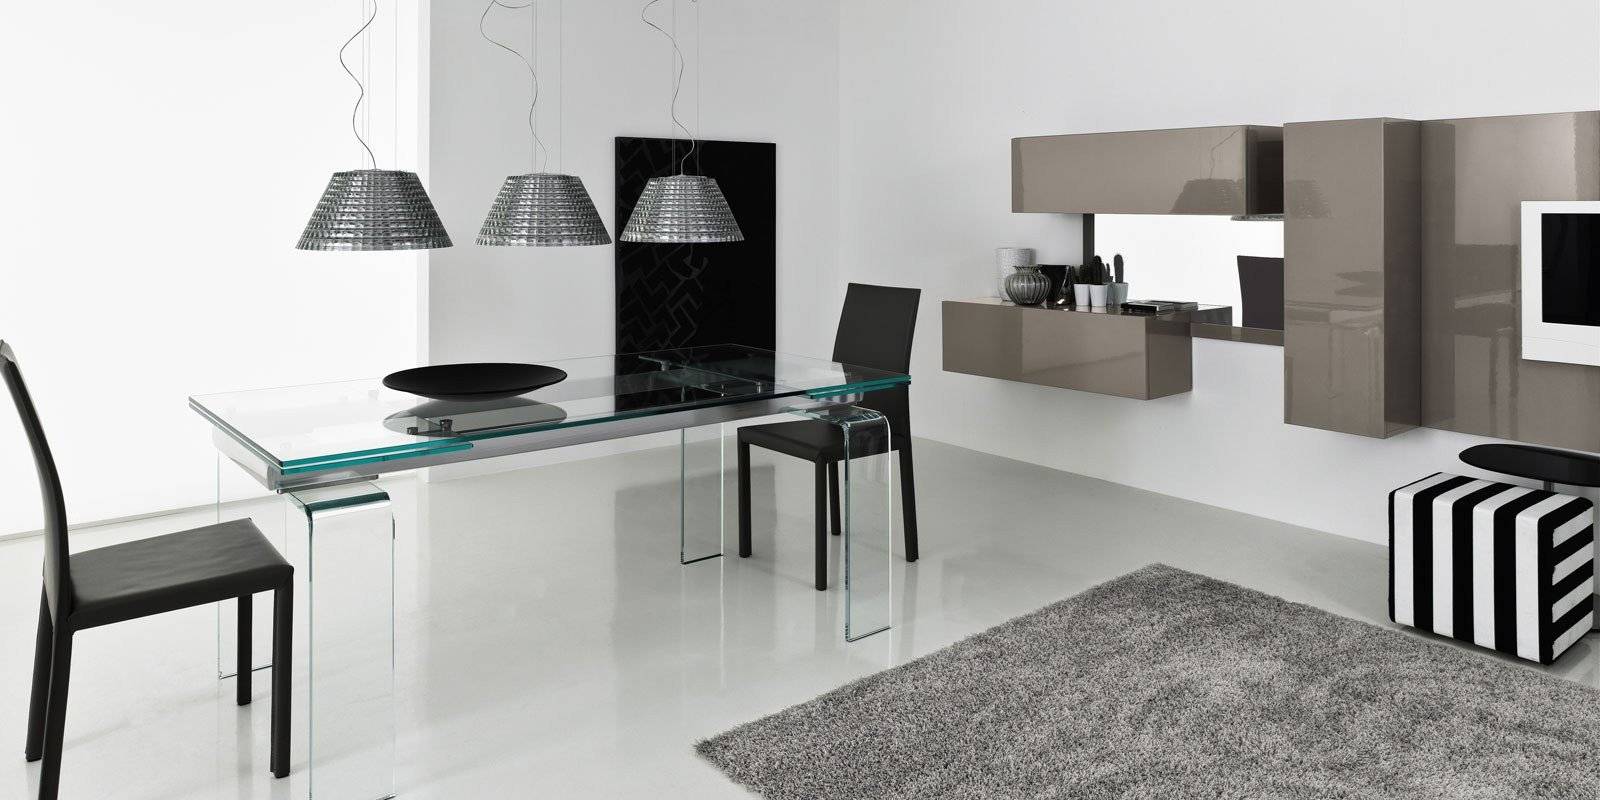 VIVRE TV wall system by ITALY DREAM DESIGN